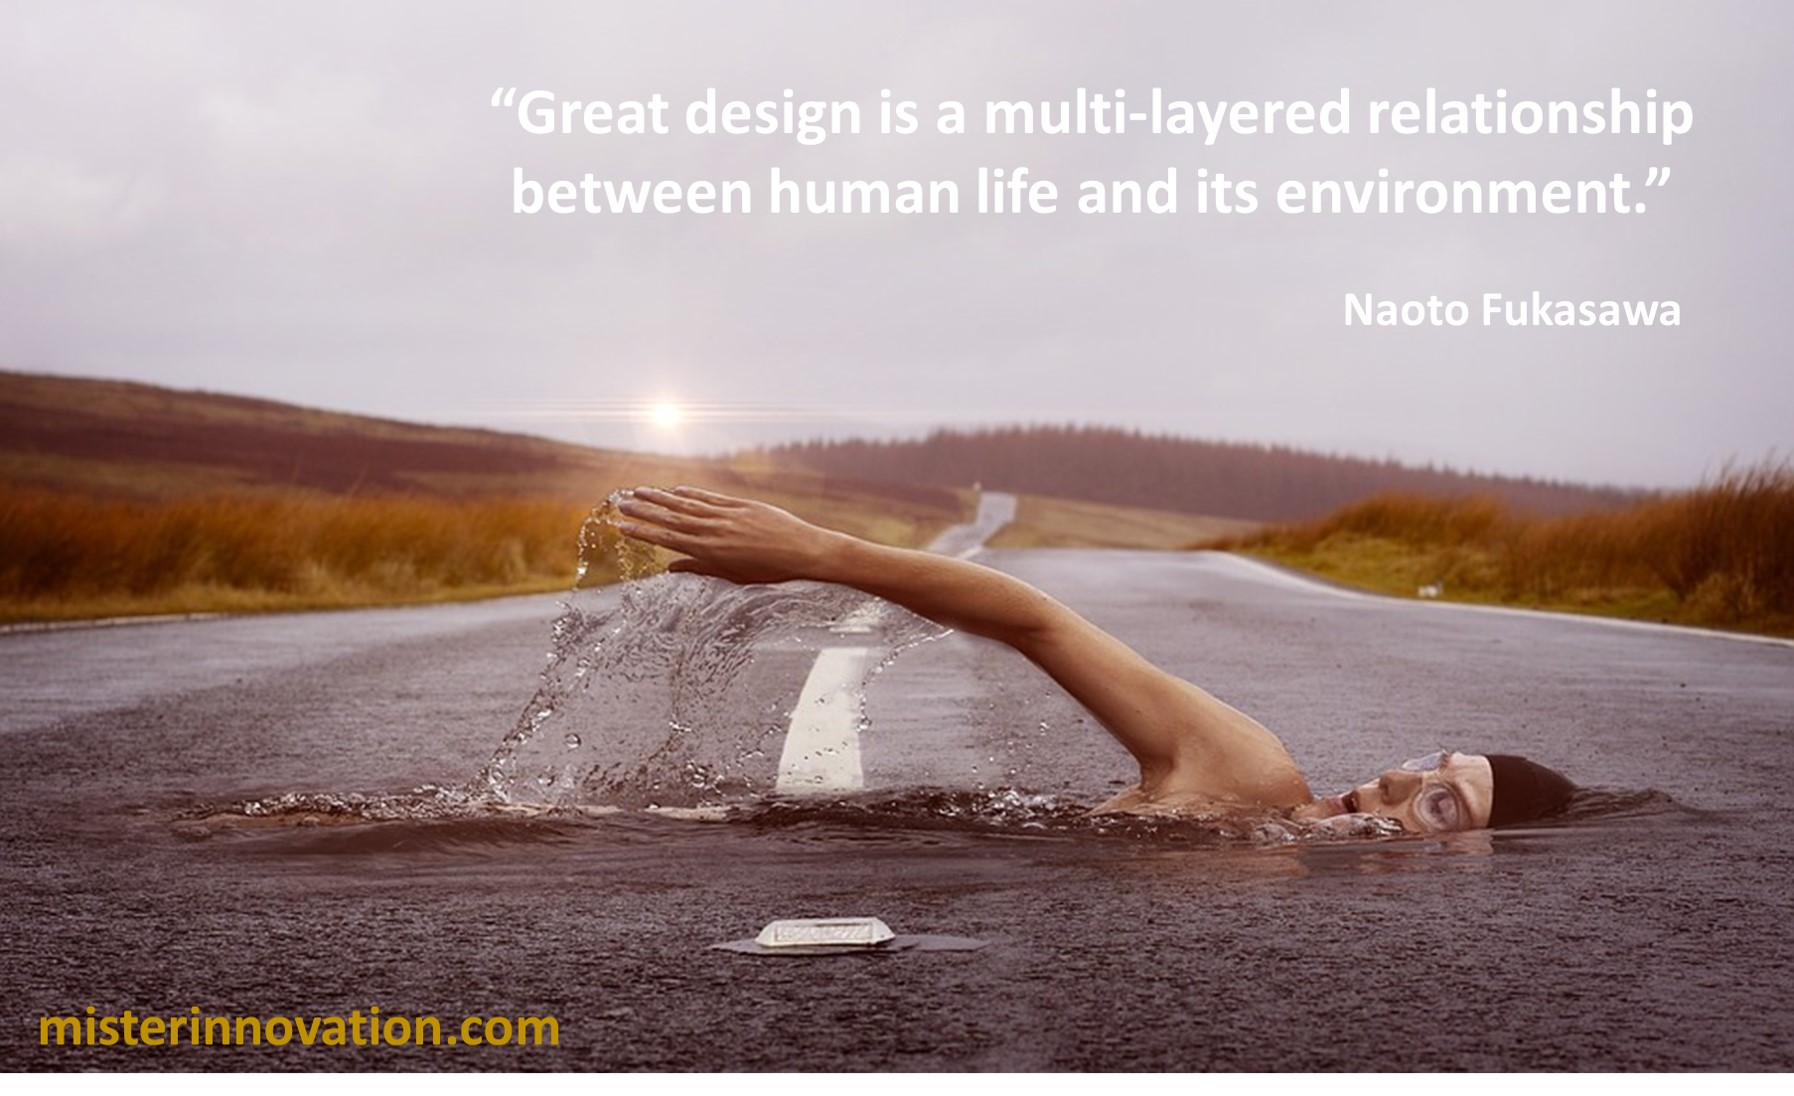 Naoto Fukasawa Quote on Great Design and the Human Environment